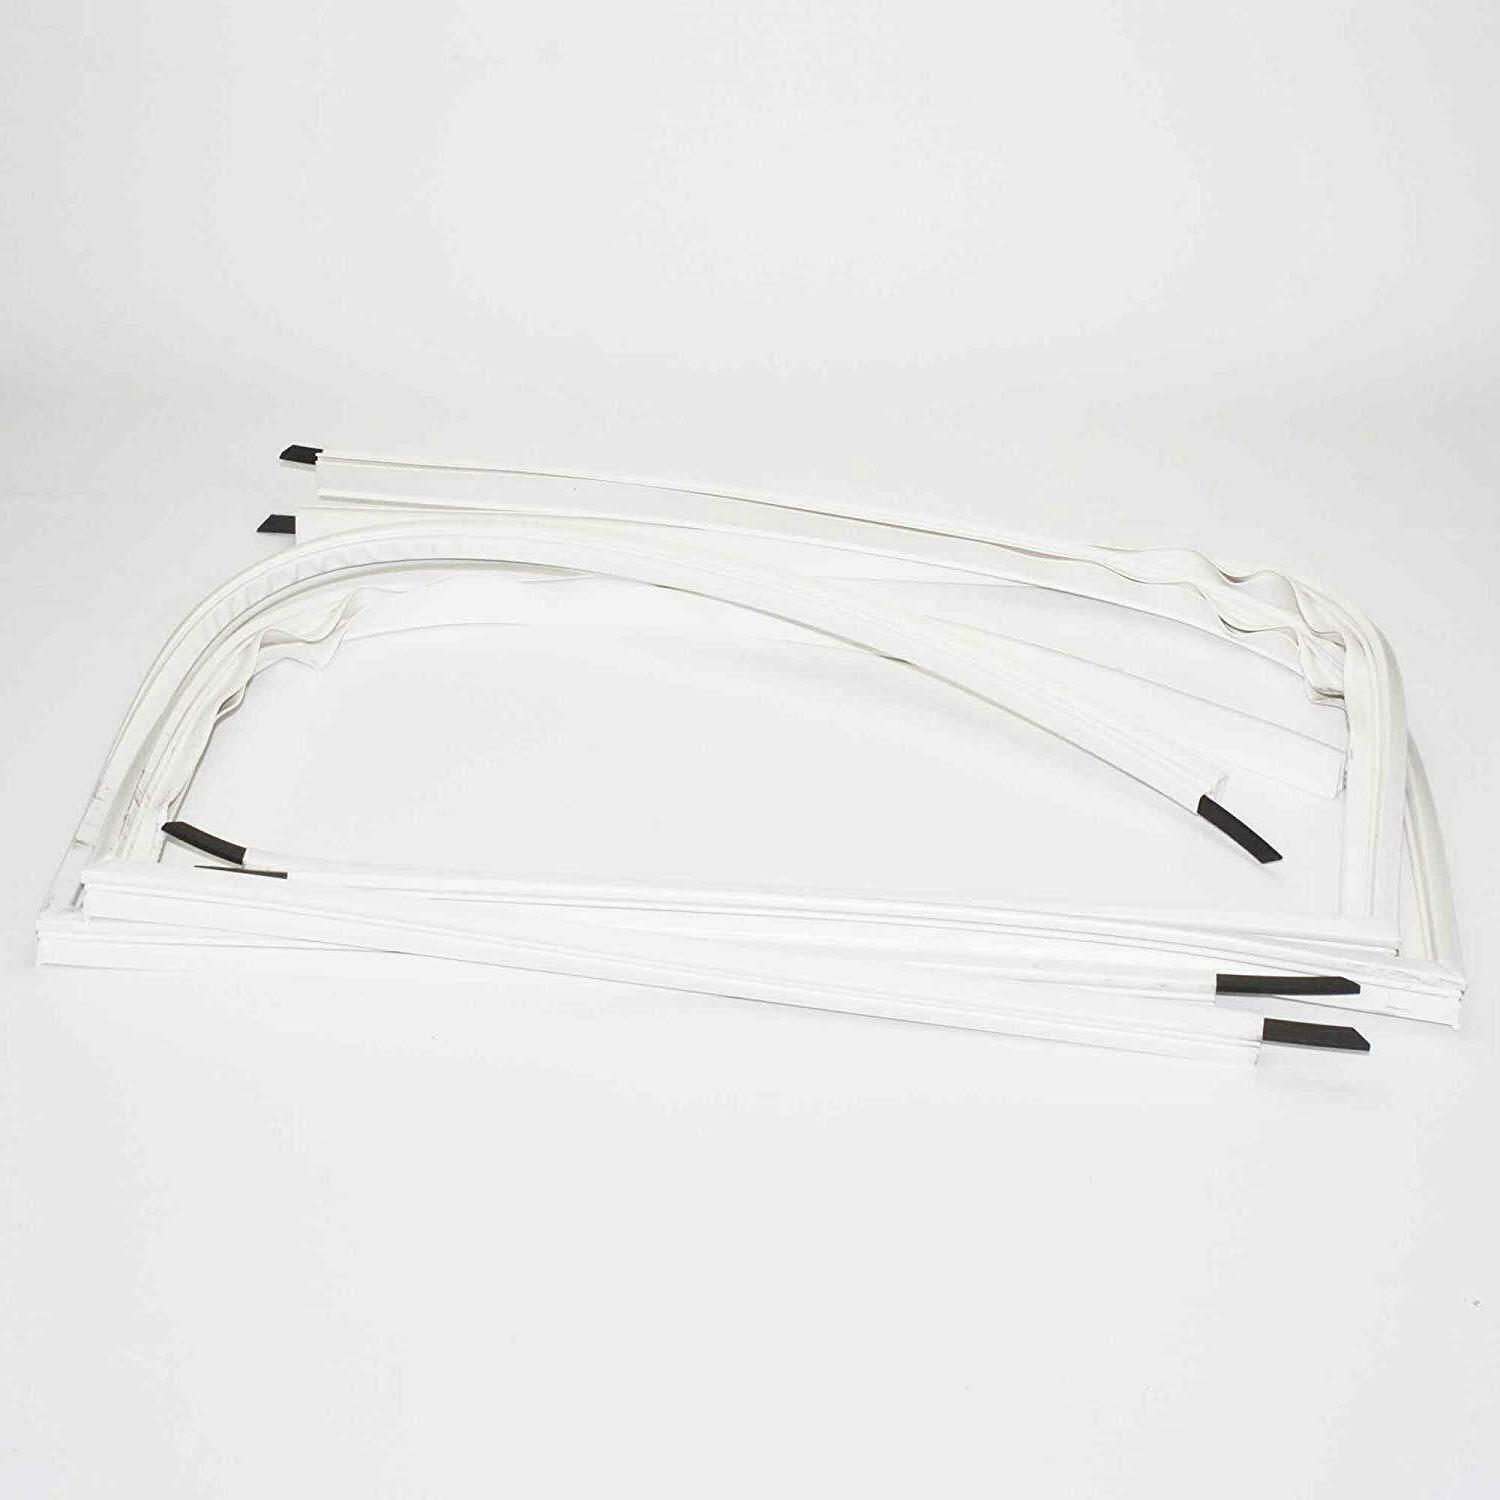 Supco Magnetic Refrigerator Door Seal Cut to Fit